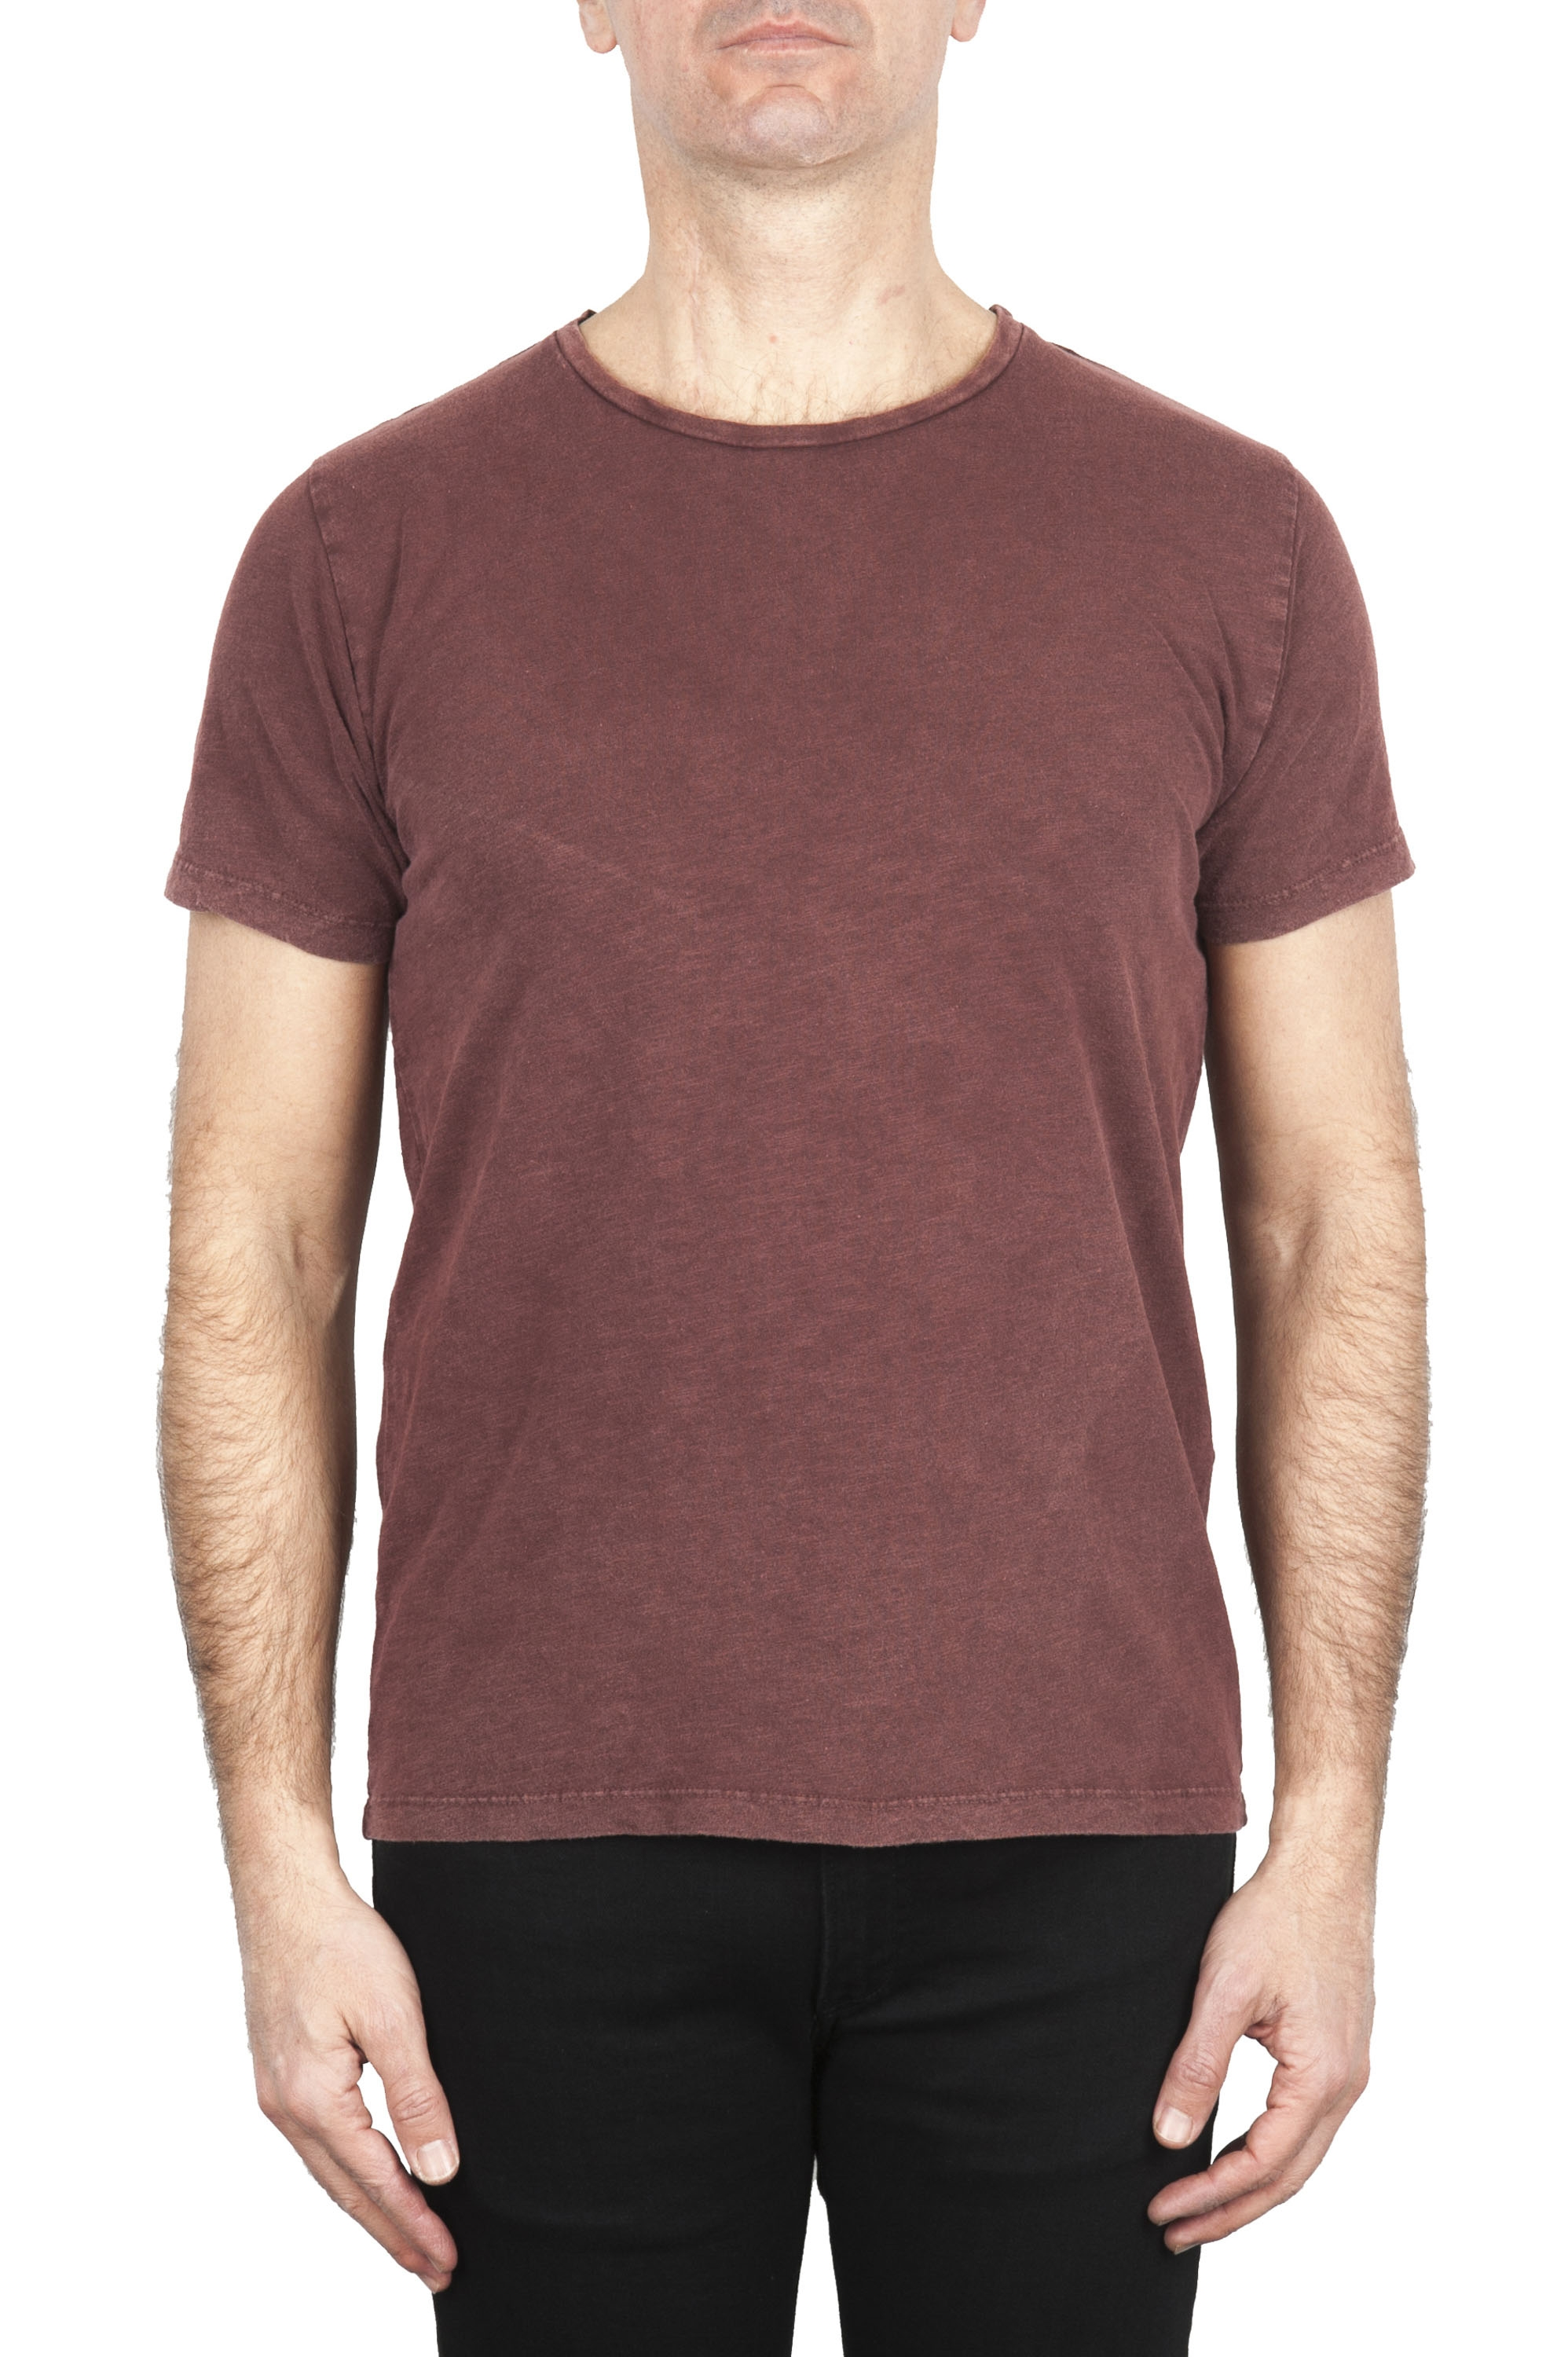 SBU 01977_2020SS Flamed cotton scoop neck t-shirt brick red 01